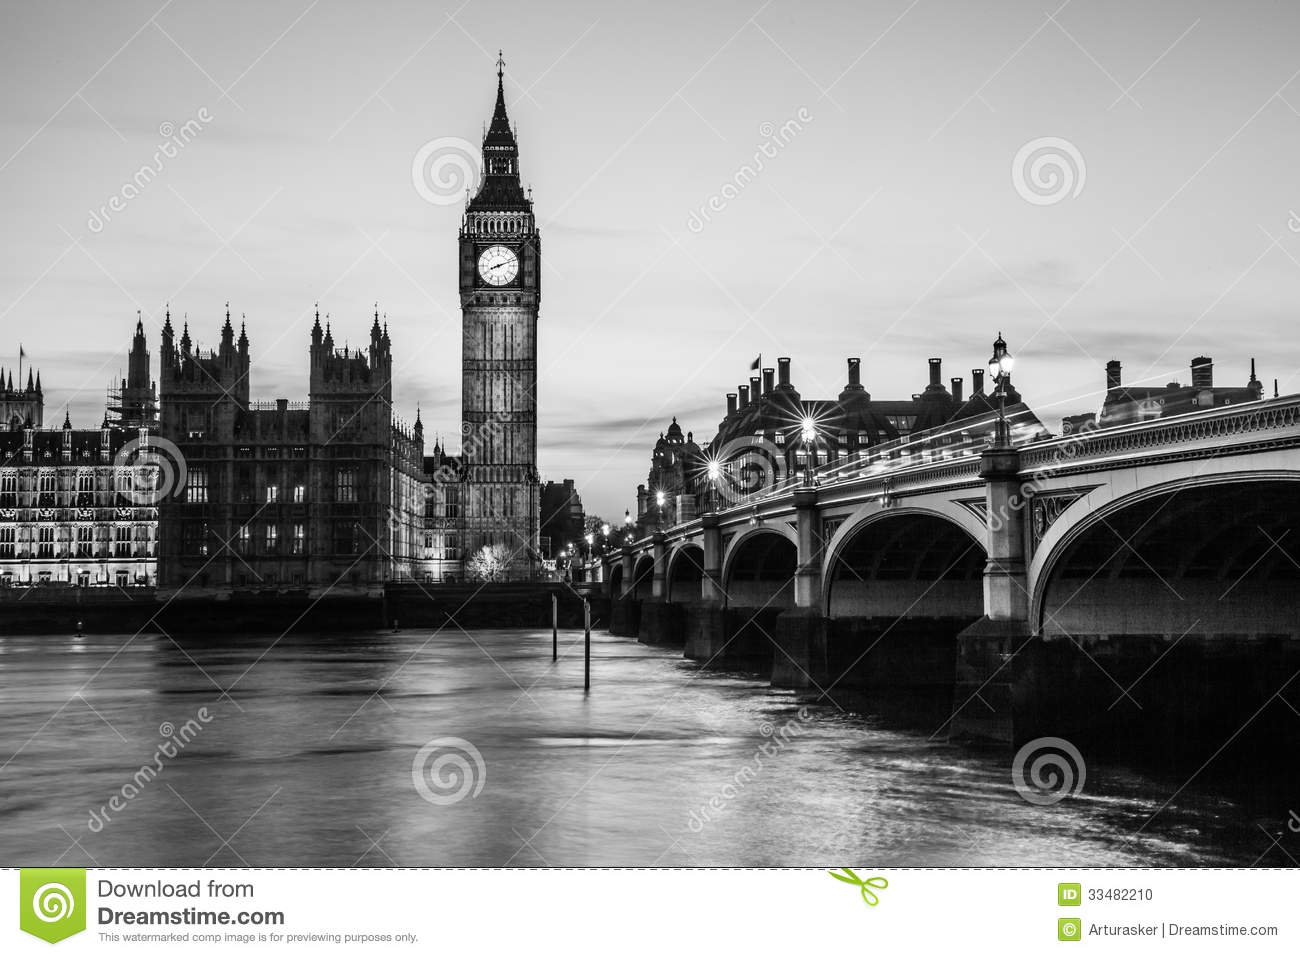 Big ben clock tower and parliament house at city of westminster black and white